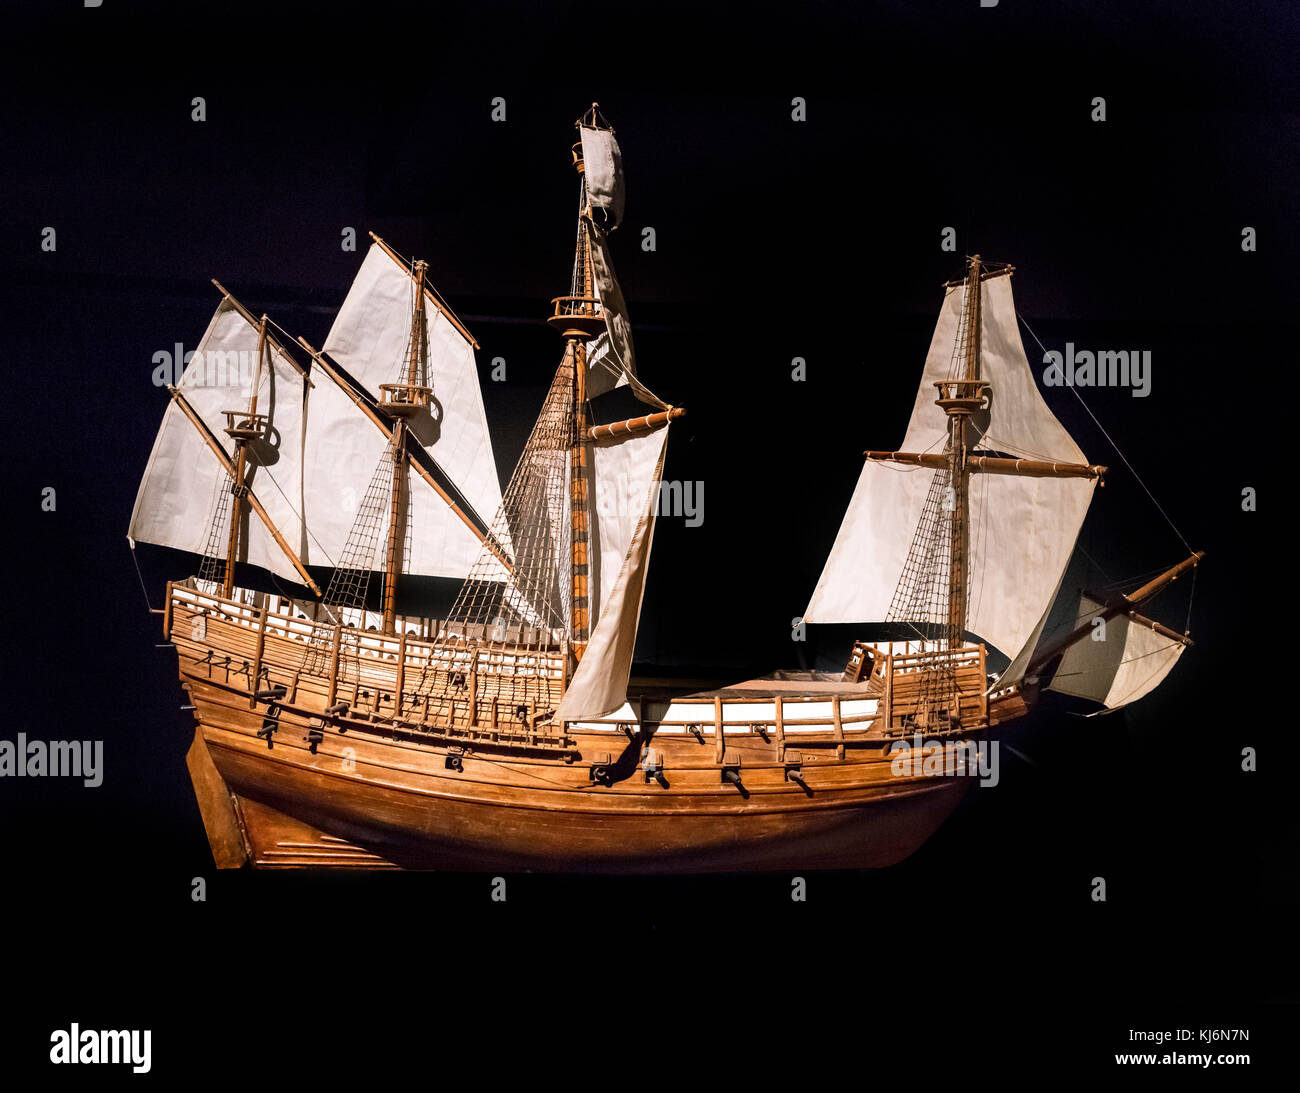 Model of the Mary Rose in the Mary Rose Museum, Portsmouth Historic Dockyard, Hampshire, England, UK - Stock Image